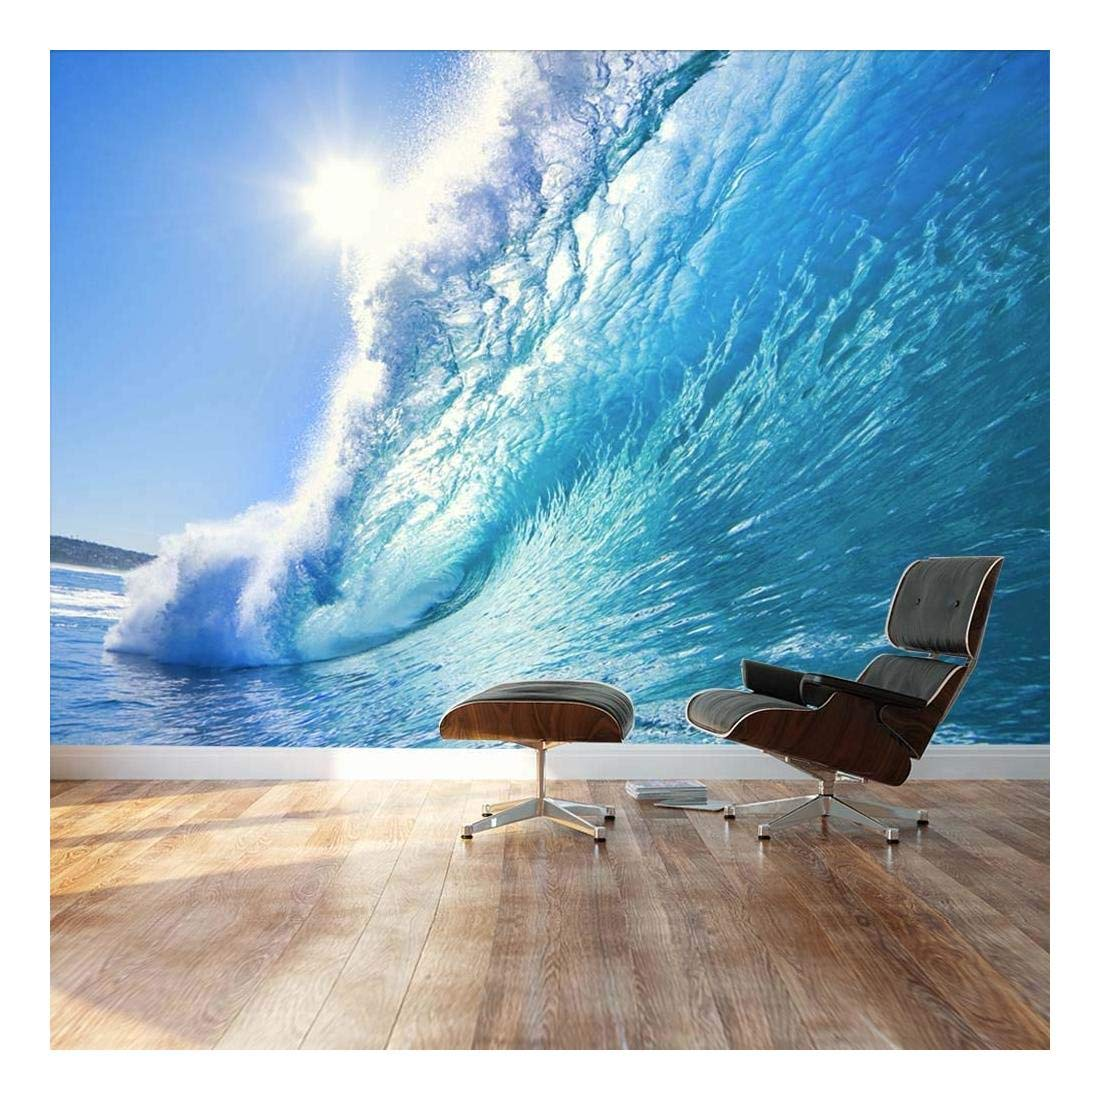 wall26 - Clear Ocean Wave and Dream Surfing Destination - Landscape - Wall Mural, Removable Sticker, Home Decor - 100x144 inches by wall26 (Image #1)